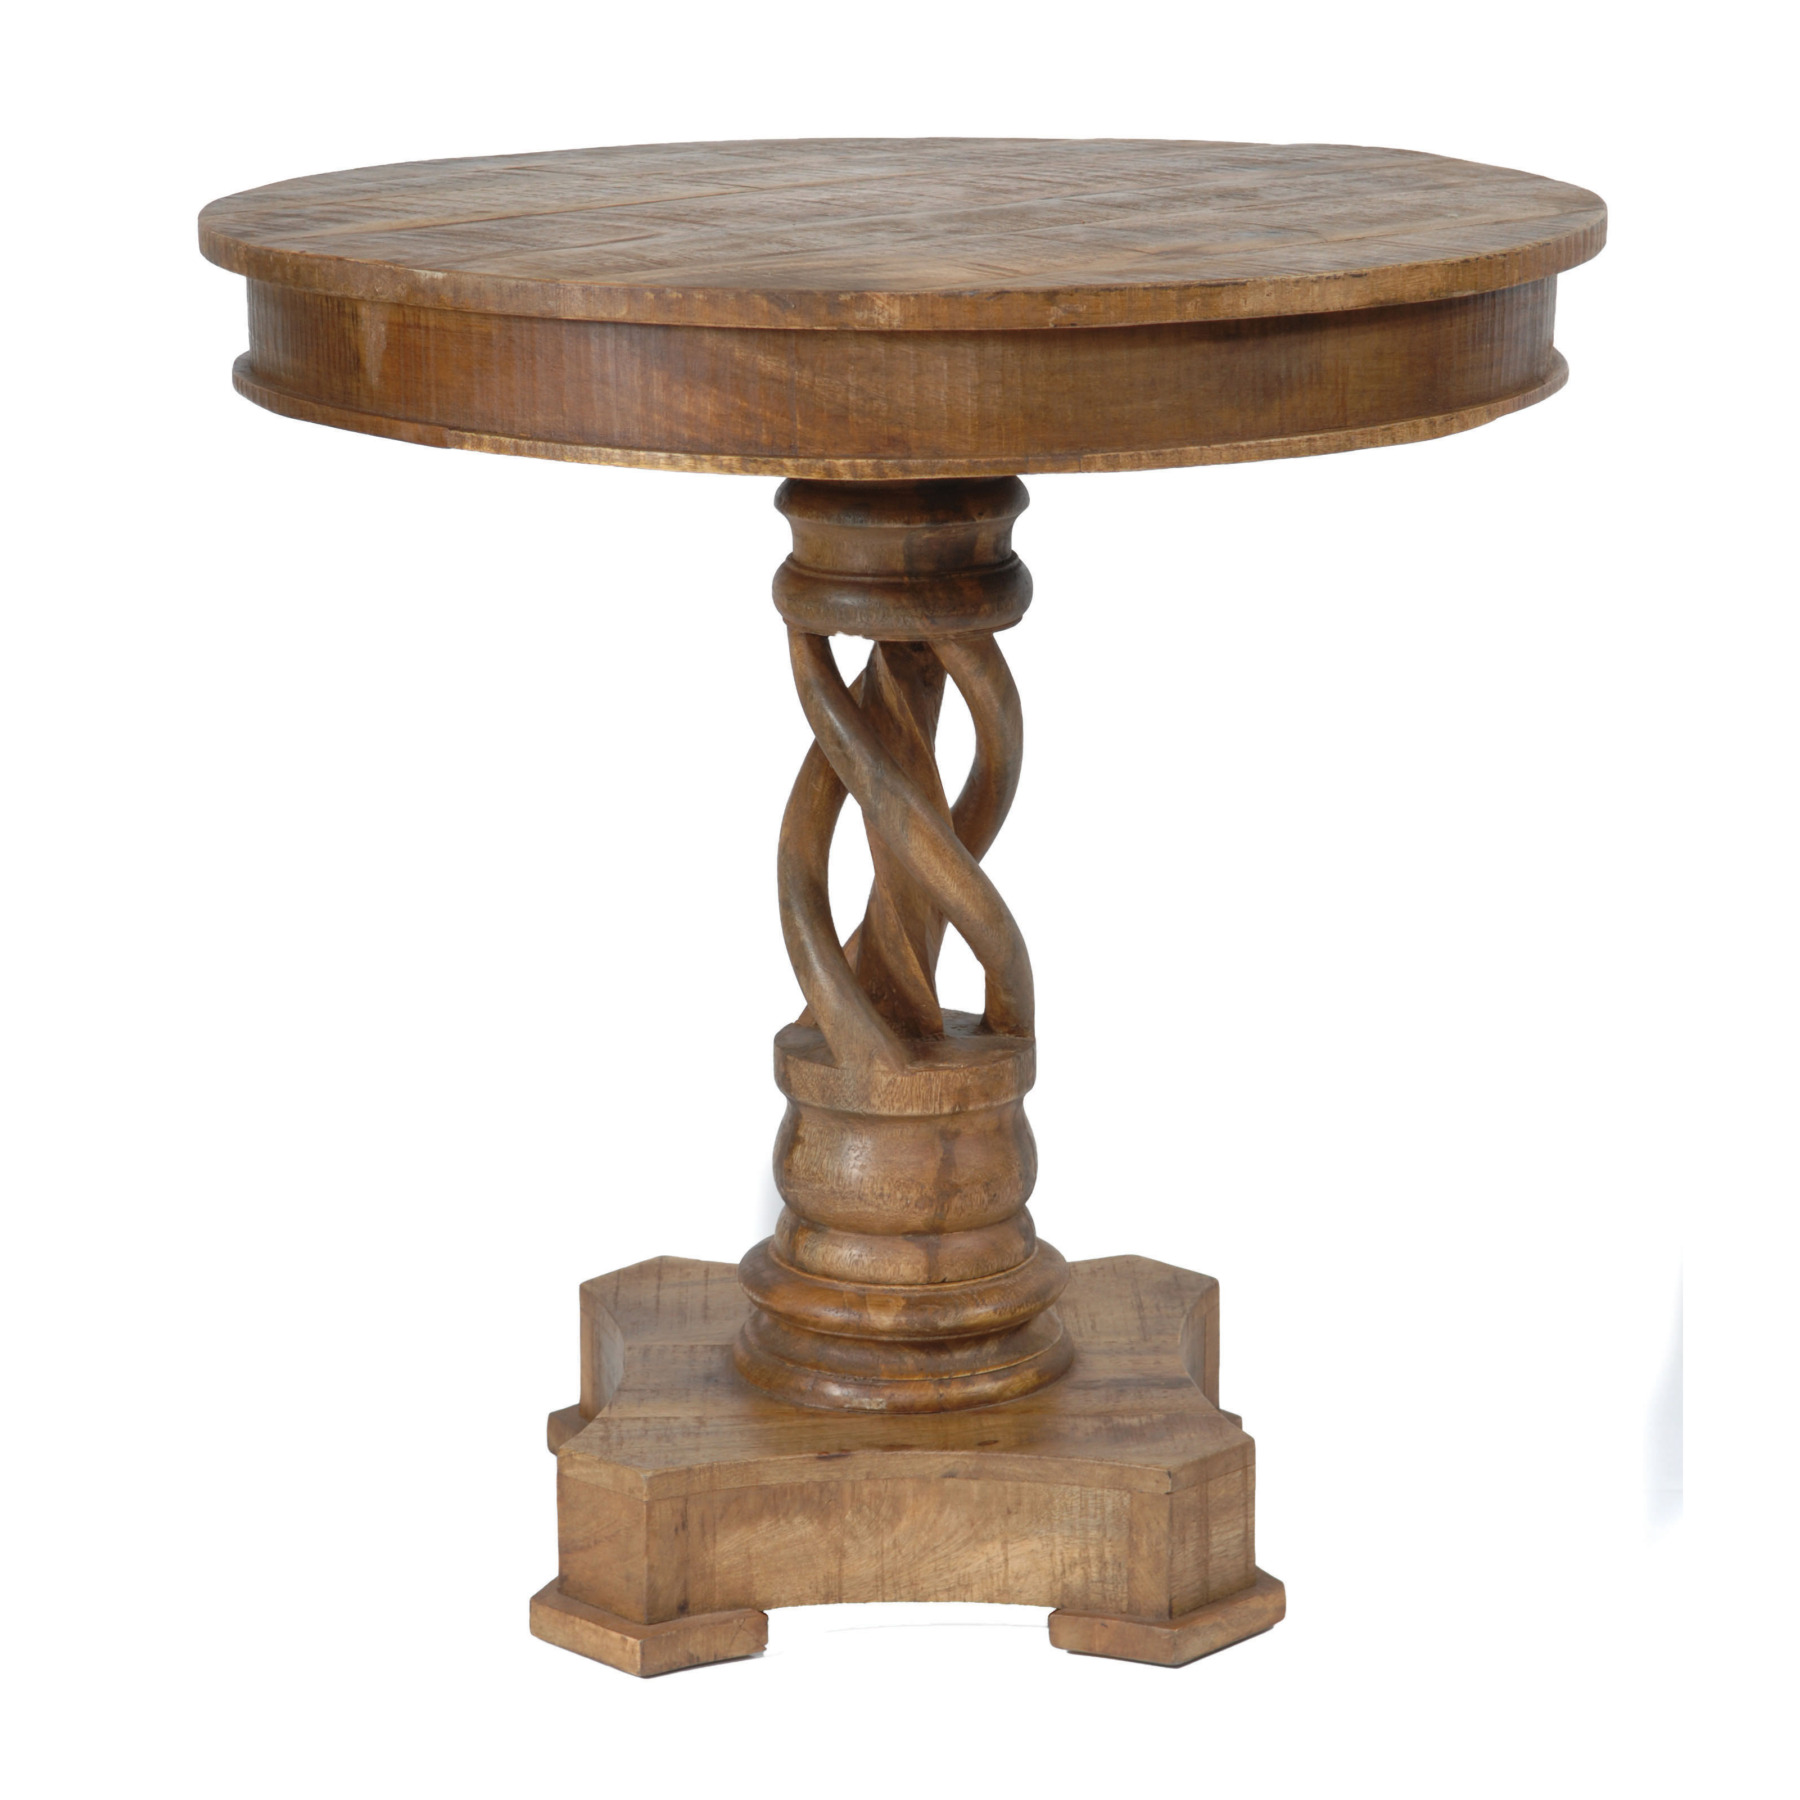 bengal manor mango wood twist accent table inches tall inch high end nate berkus lamp balcony umbrella metal drum tilt diy plans threshold margate small wooden barn door entry